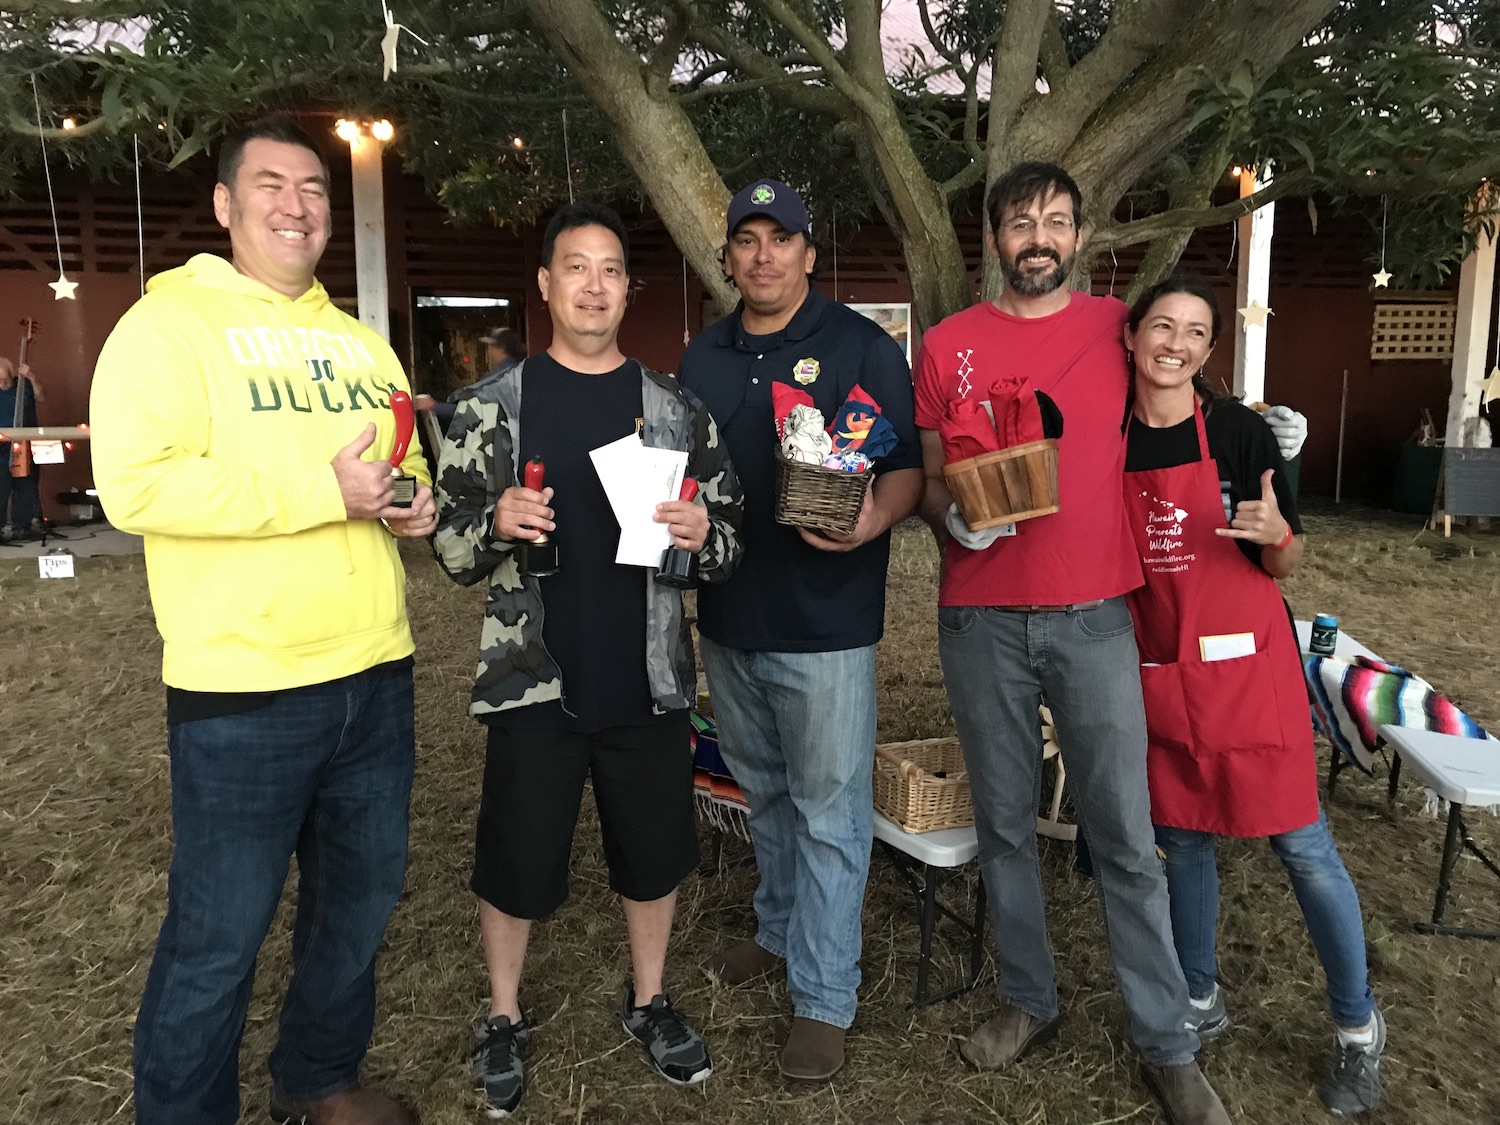 2nd Annual Firefighter Chili Cookoff for Wildfire Prevention_11_3_2018_29 copy.JPG